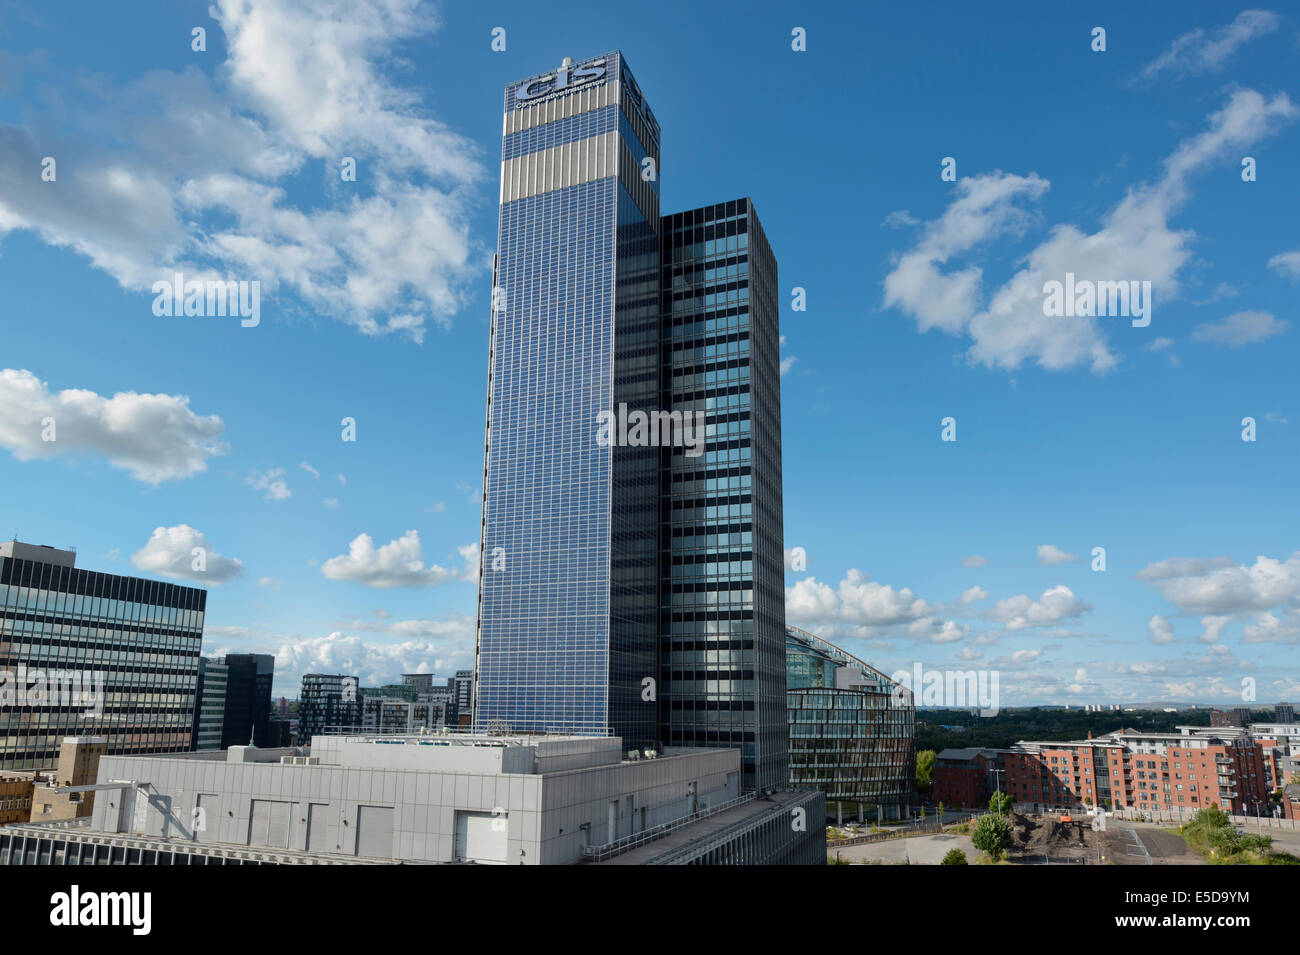 CIS Tower, home of Co-operative Insurance Society, located on Miller Street in Manchester city centre. - Stock Image